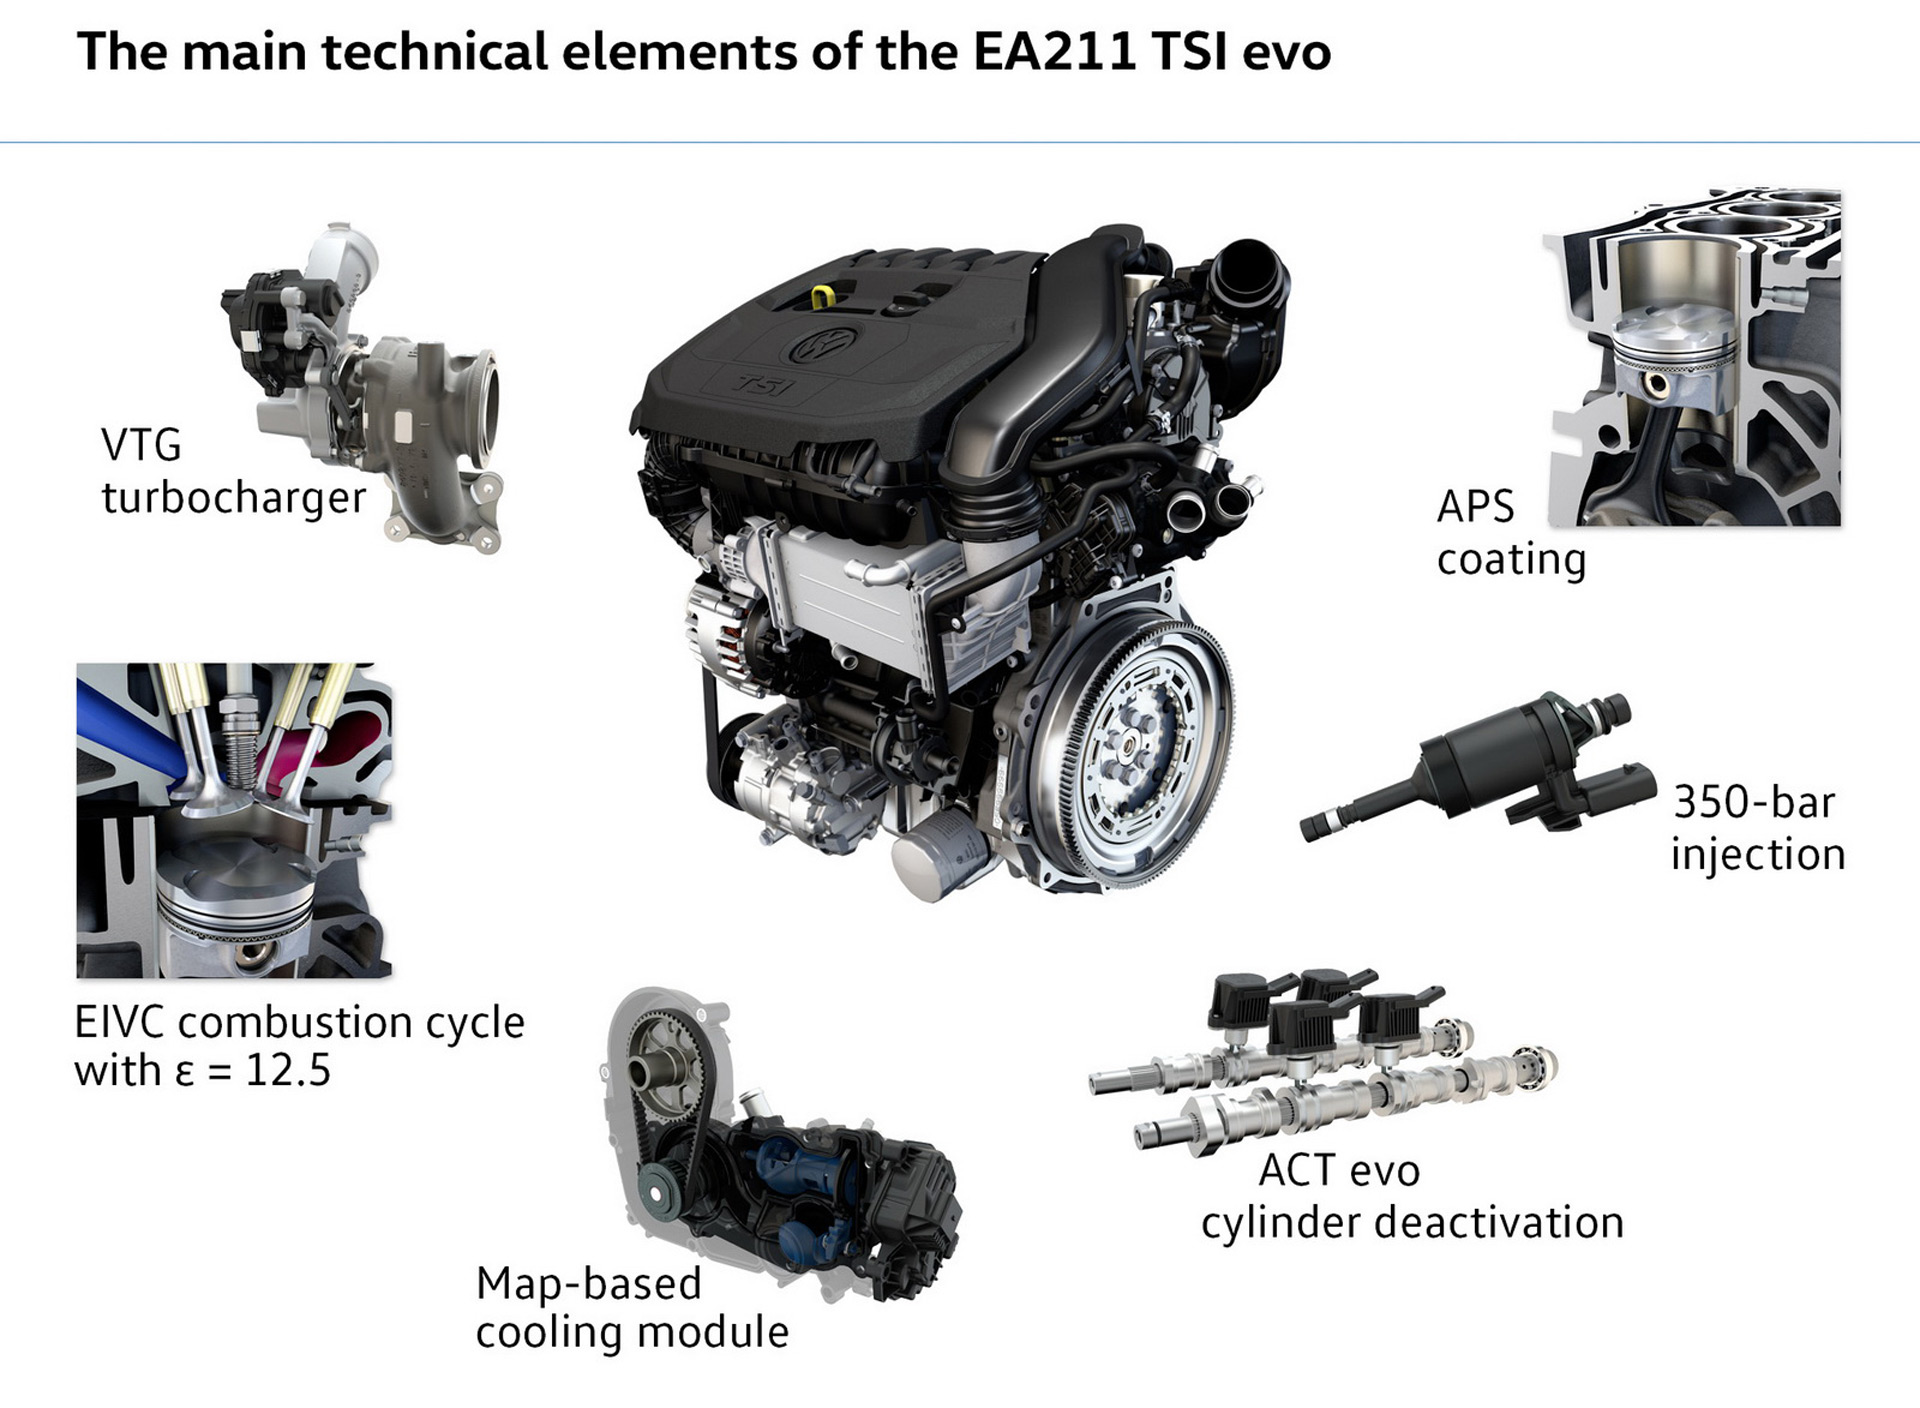 Vw Unveils 1 5 Liter Engine With Variable Turbine Geometry